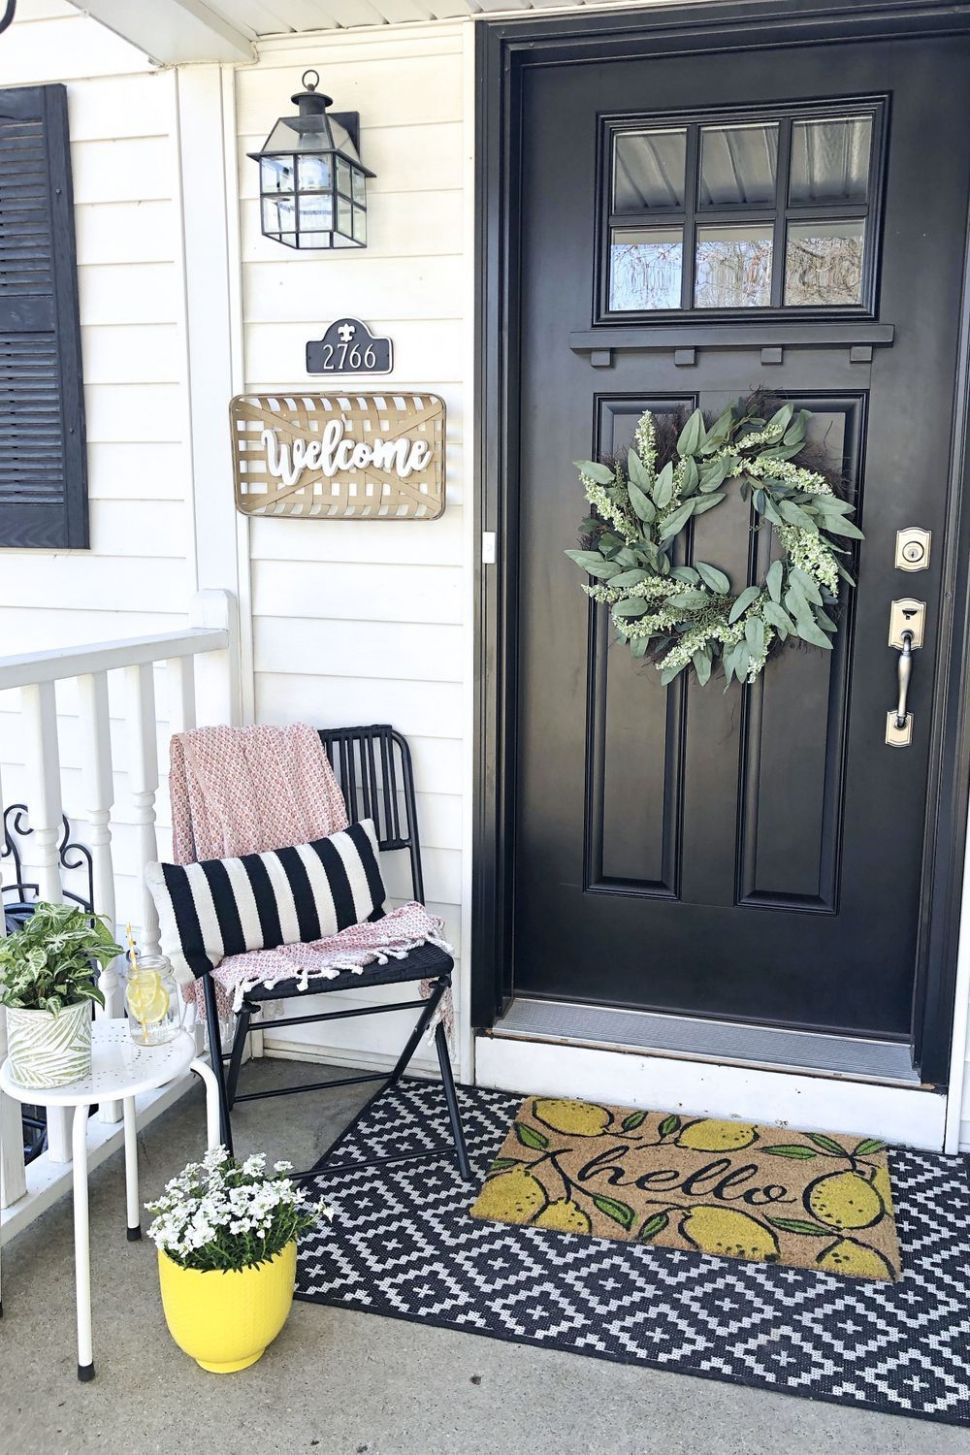 Porch Design Patio Chair Yellow Room in 10 | Front porch ..